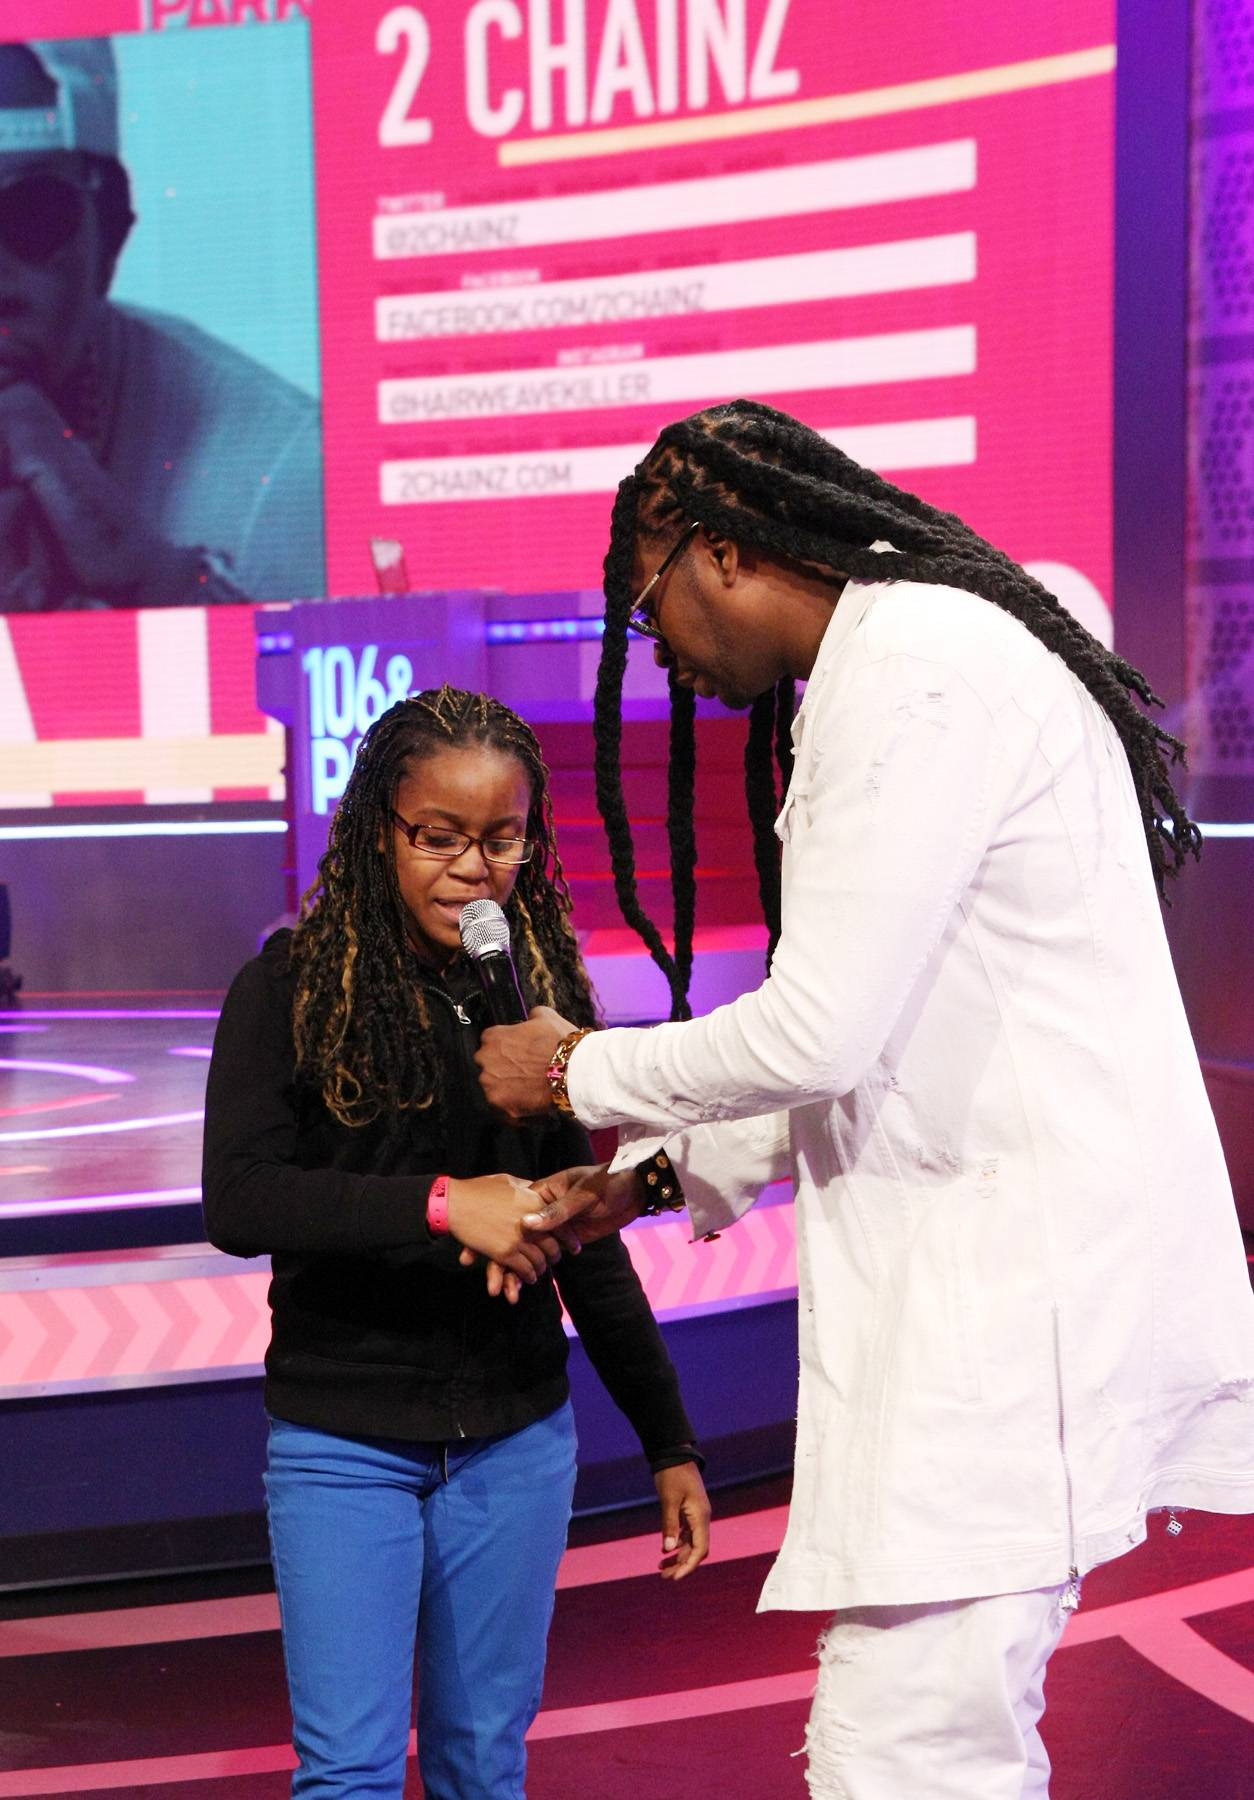 One Chance - 2 Chainz shows one of his fans some love.(Photo: Bennett Raglin/BET/Getty Images for BET)